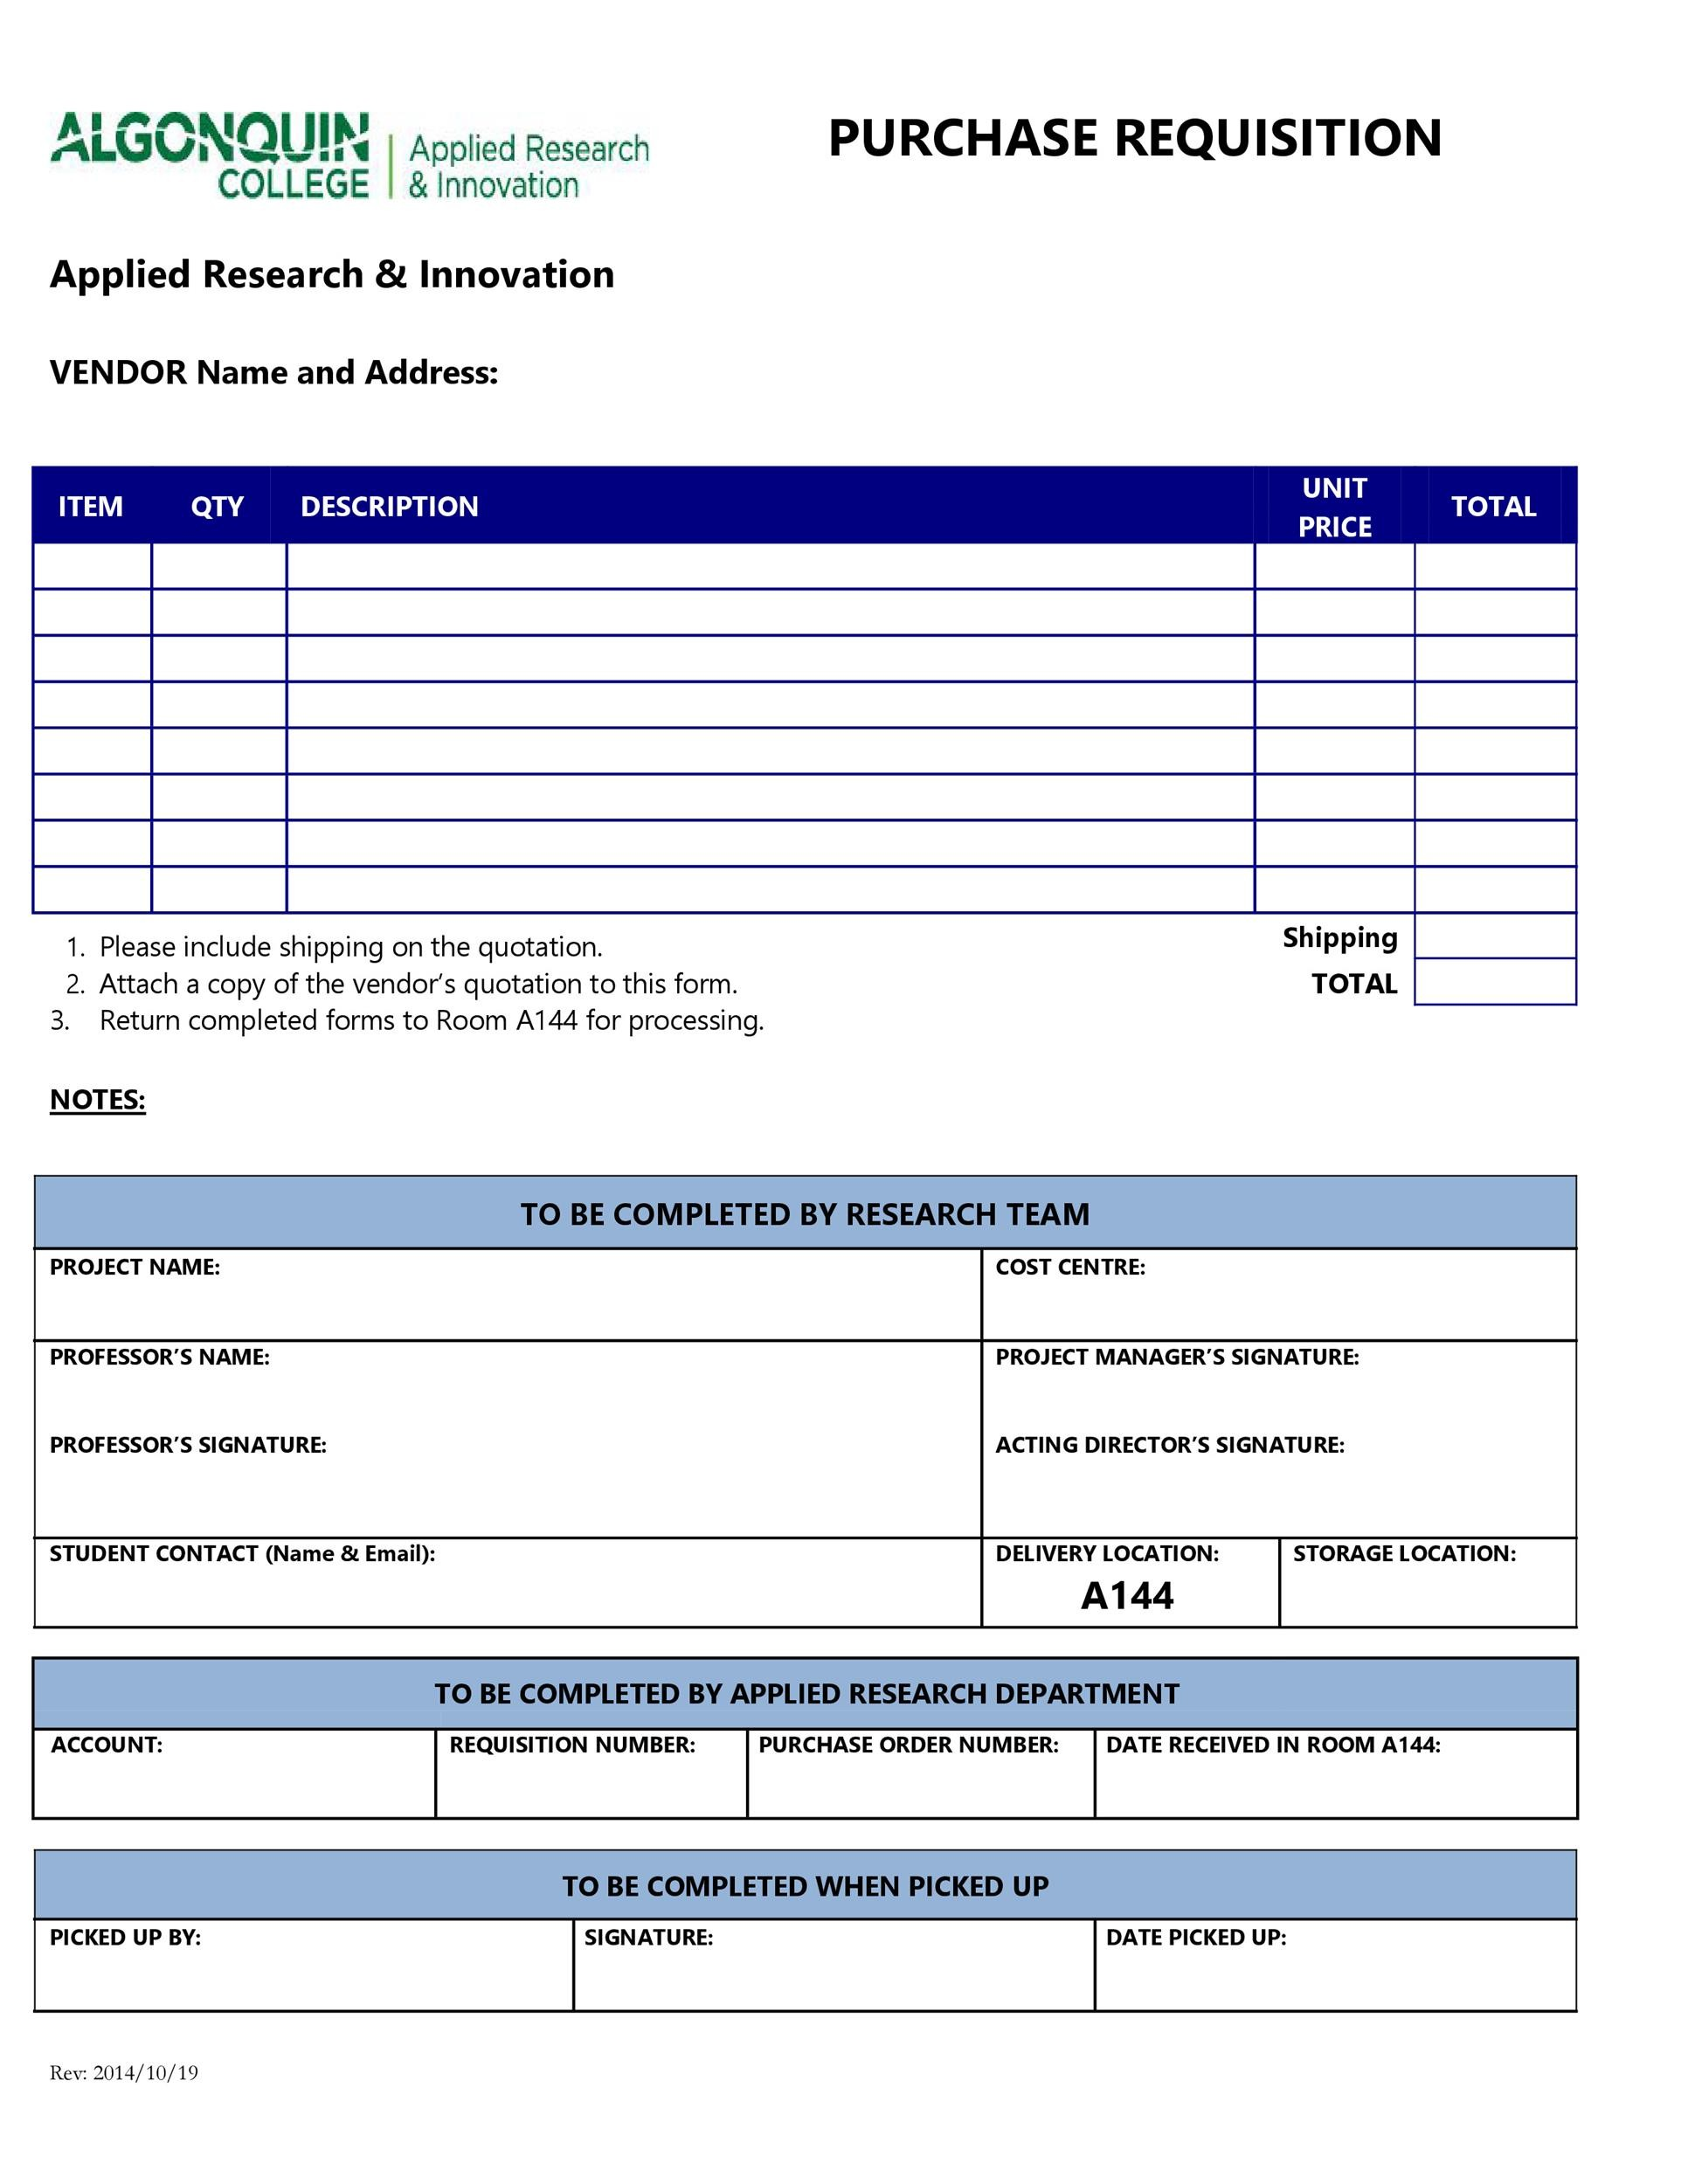 50 Professional Requisition Forms [Purchase / Materials / Lab]